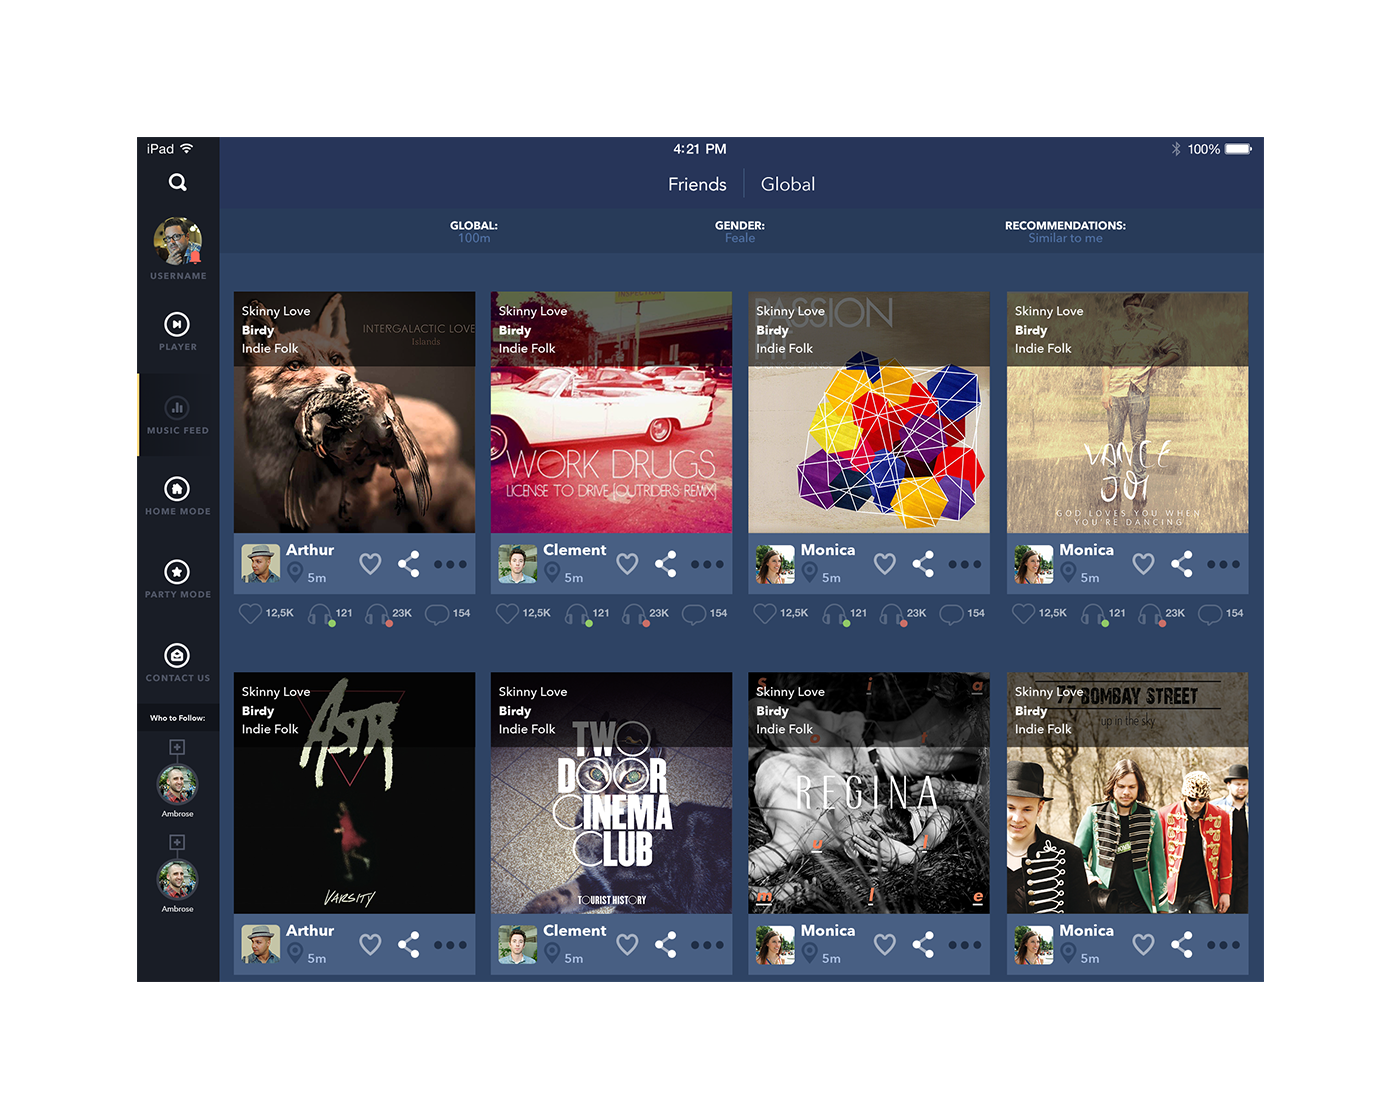 UI iPad Feed music app design